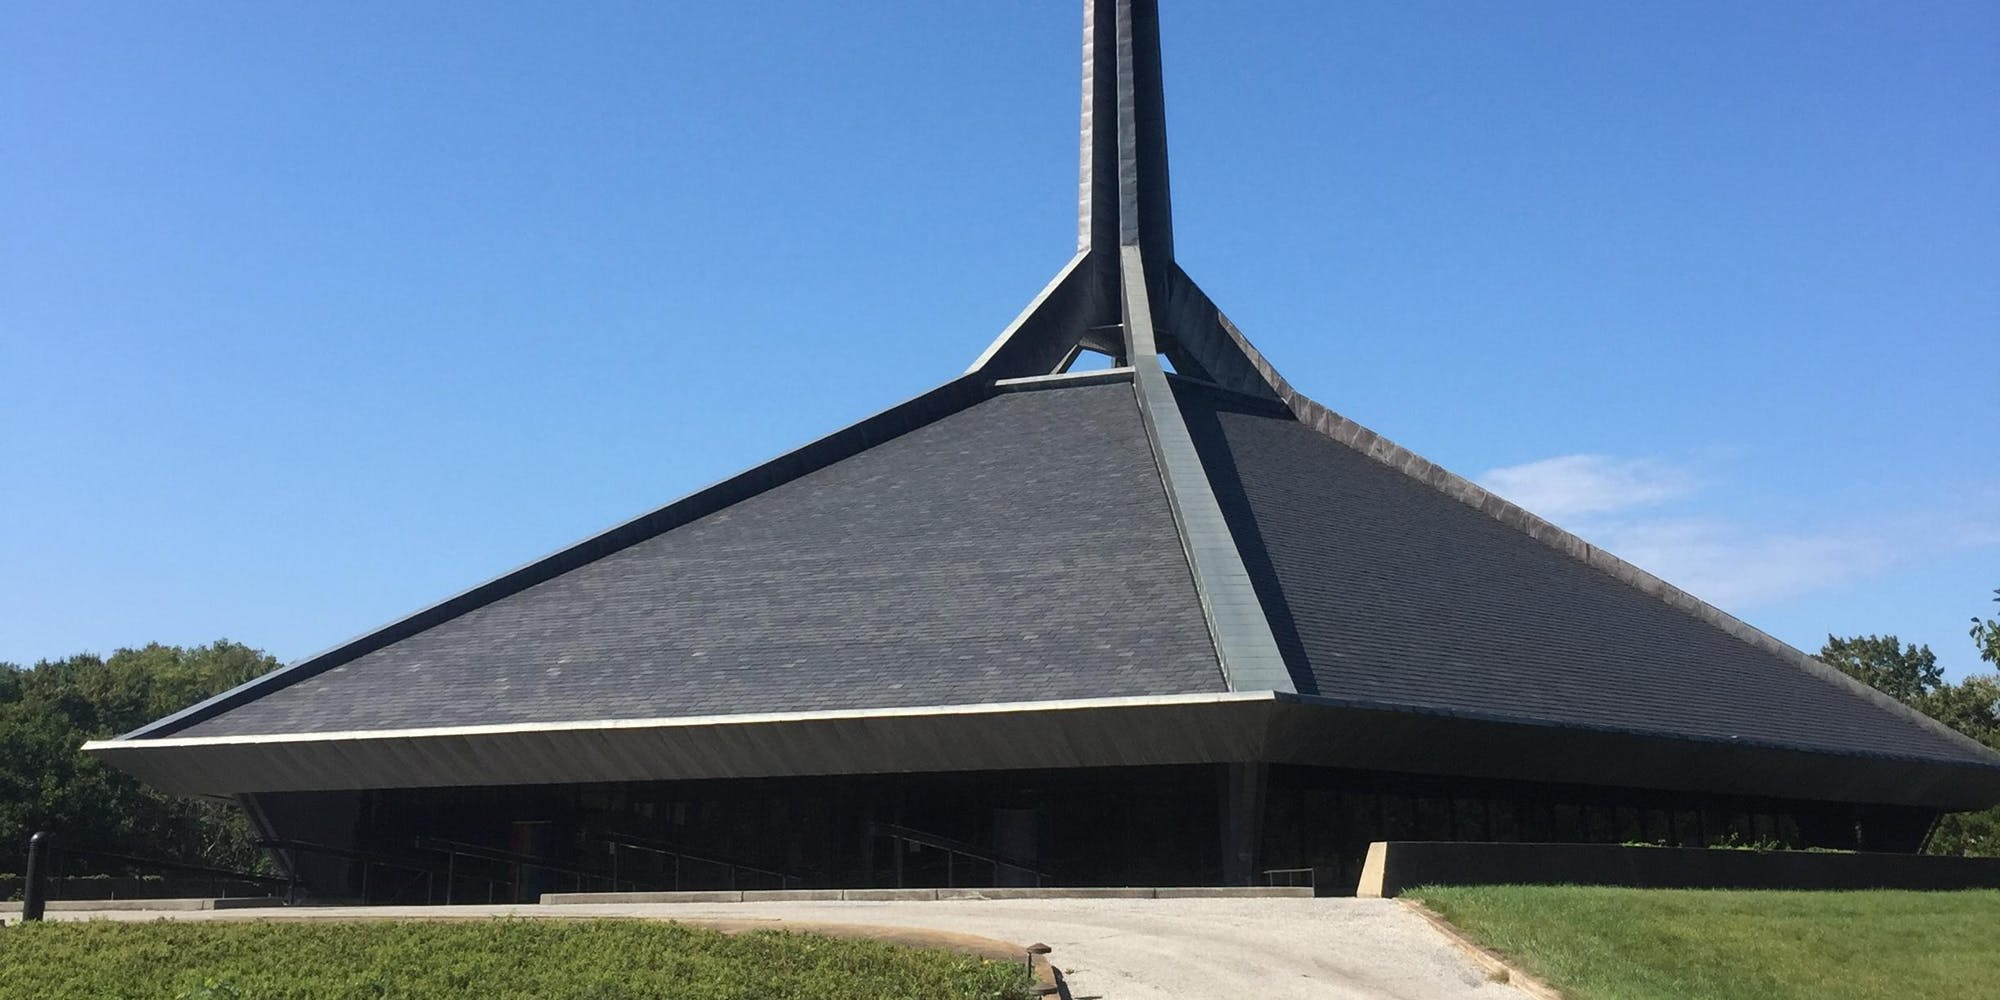 Photo of North Christian Church in Columbus Indiana, designed by Eero Saarinen, 1964